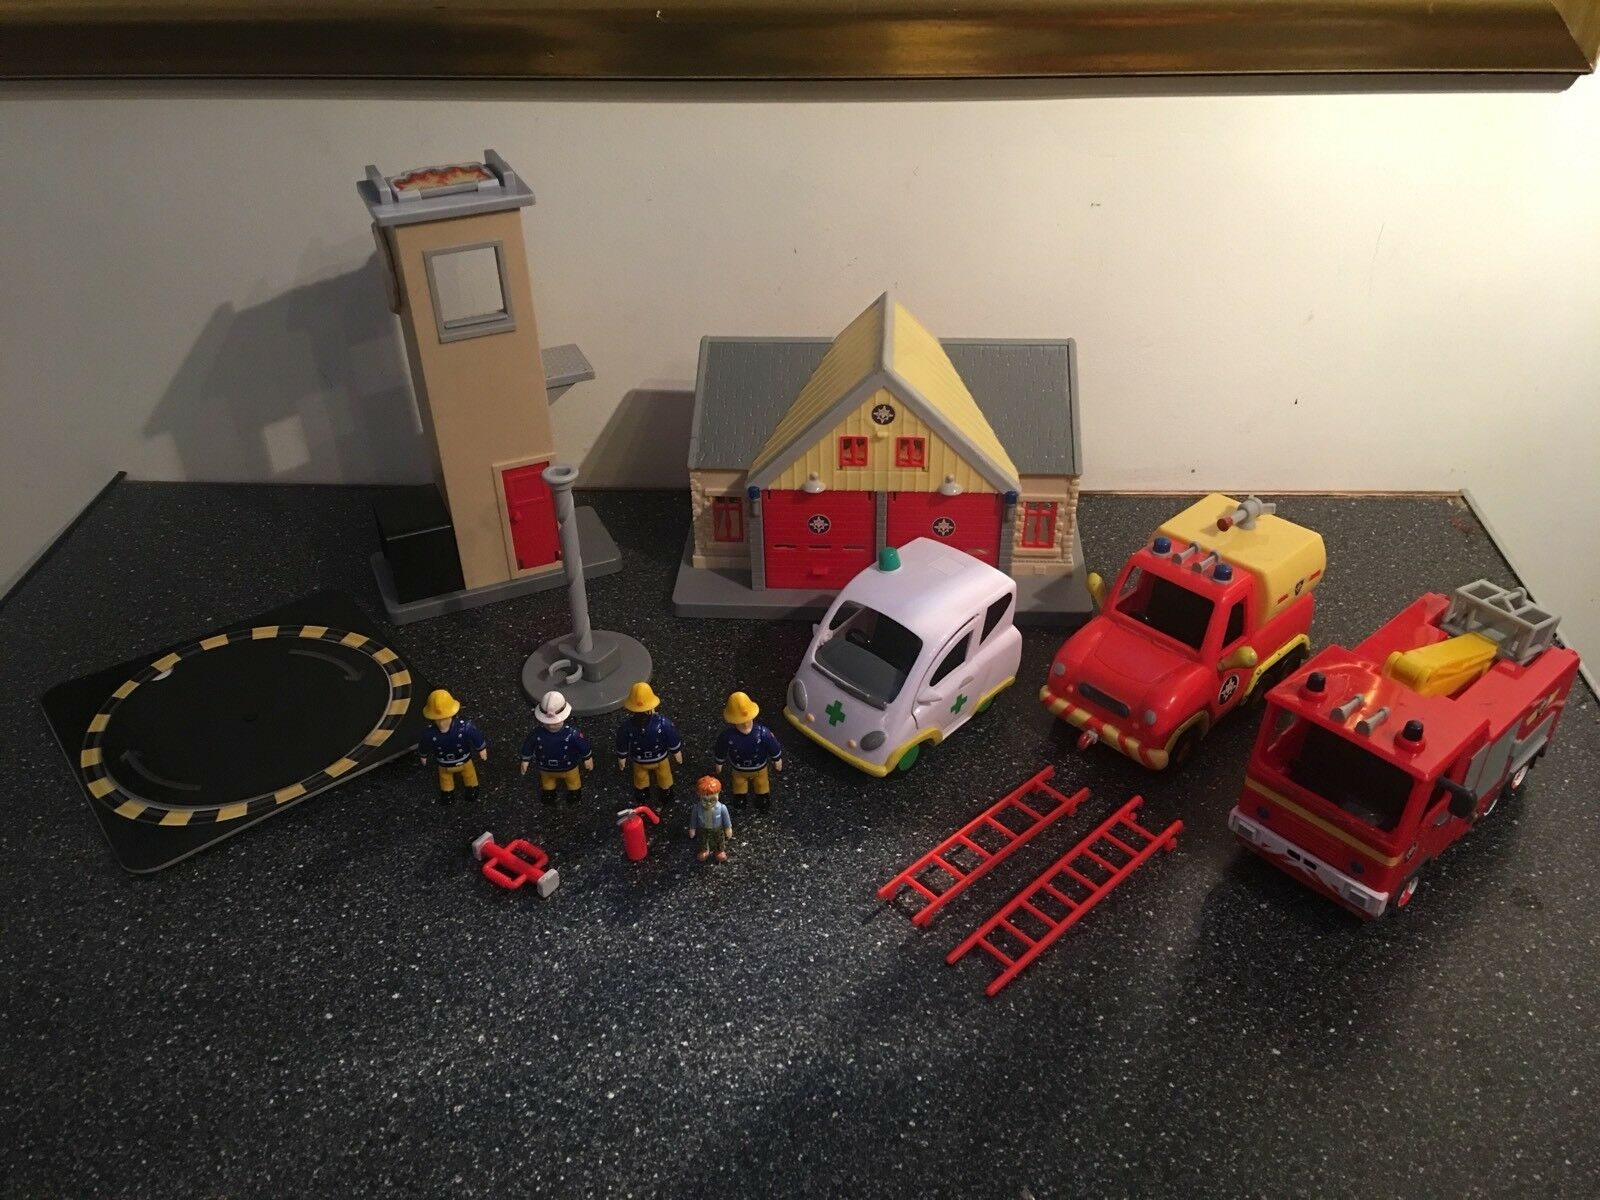 FIREMAN SAM SAM SAM BUNDLE WITH FIGURES ACCESSORIES AND VEHICLES 6a6698